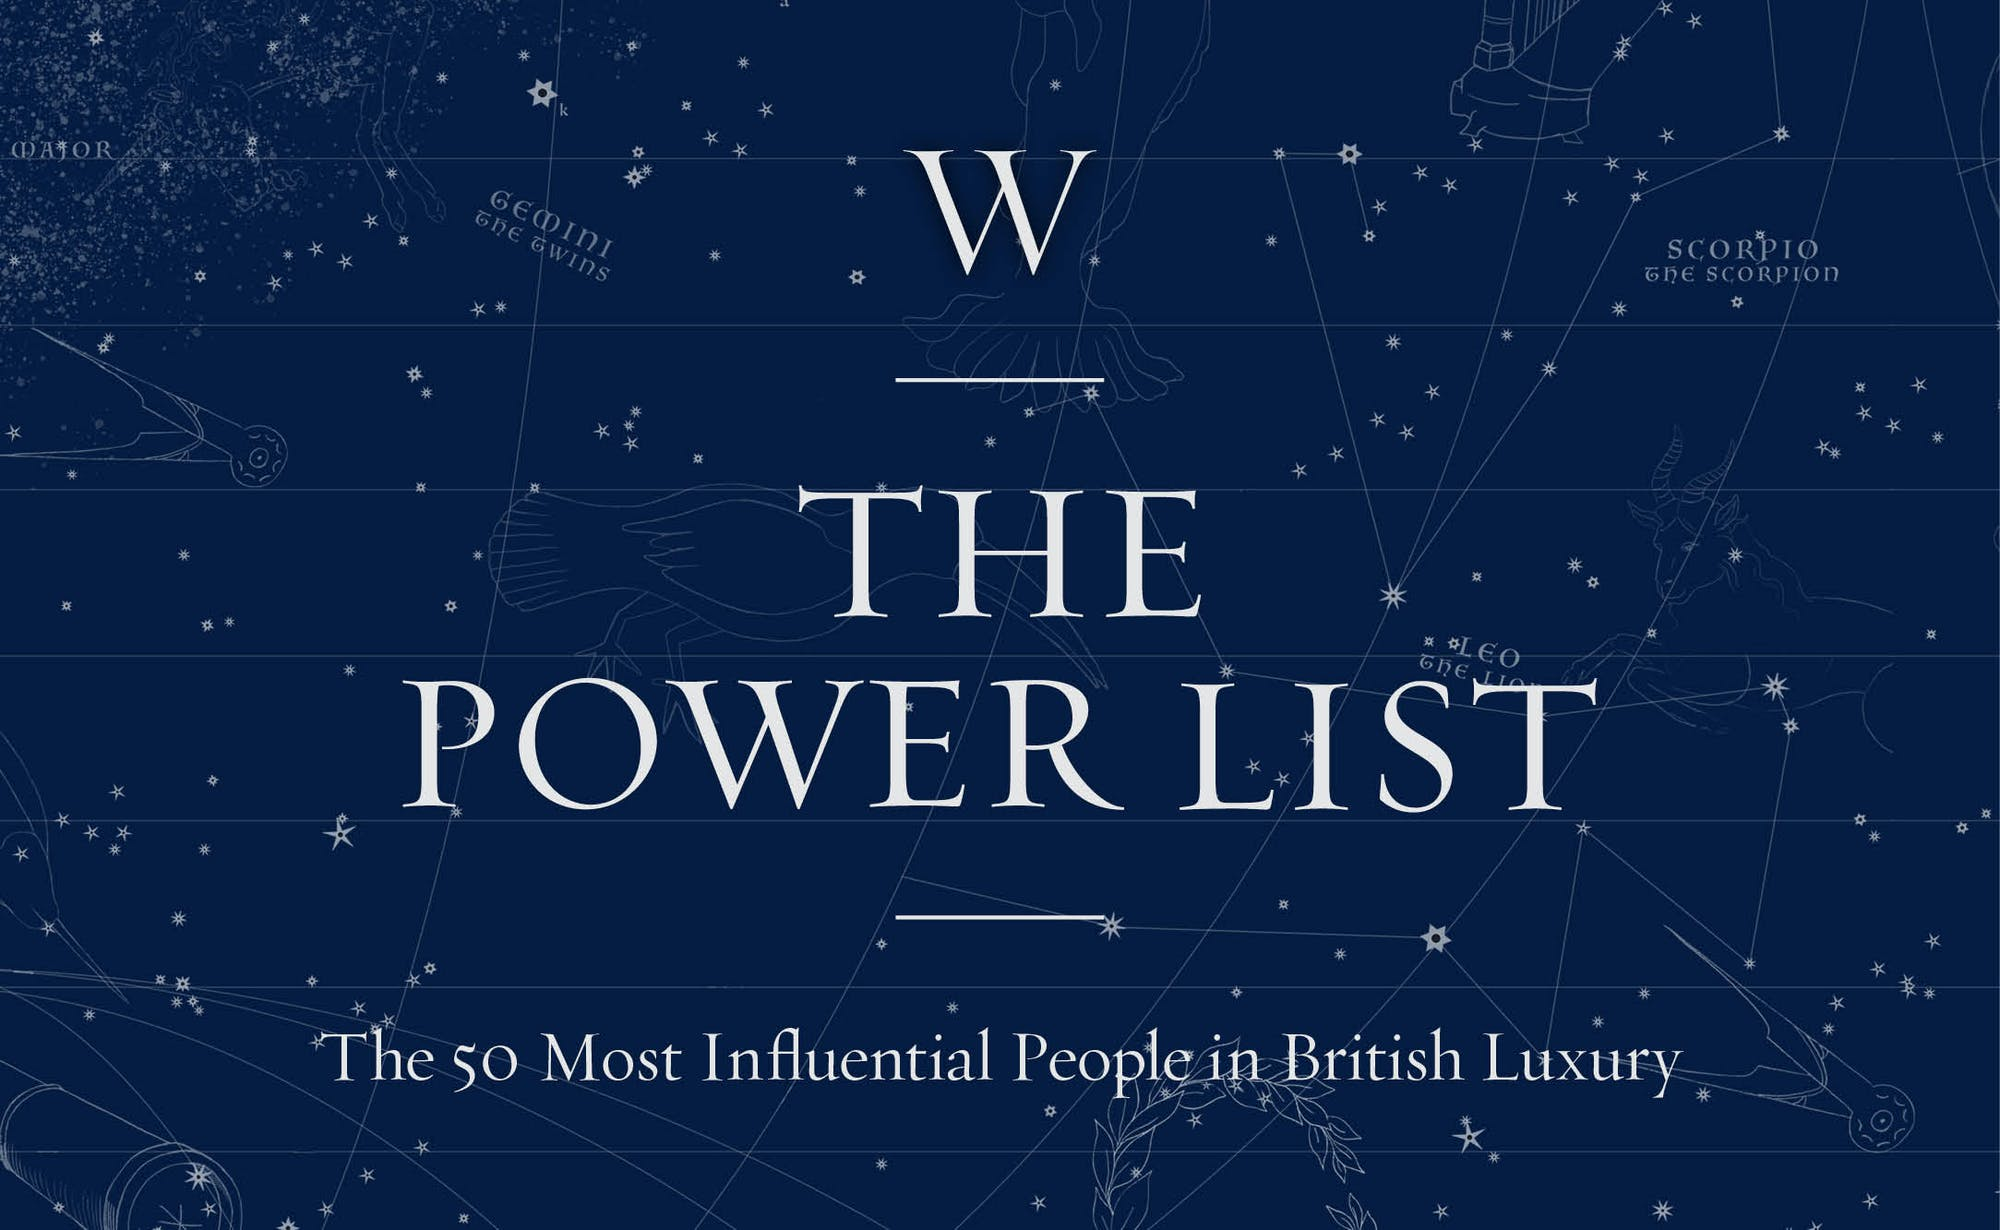 The Power List 2020  Who will be named as the 50 Most Influential People in British Luxury?